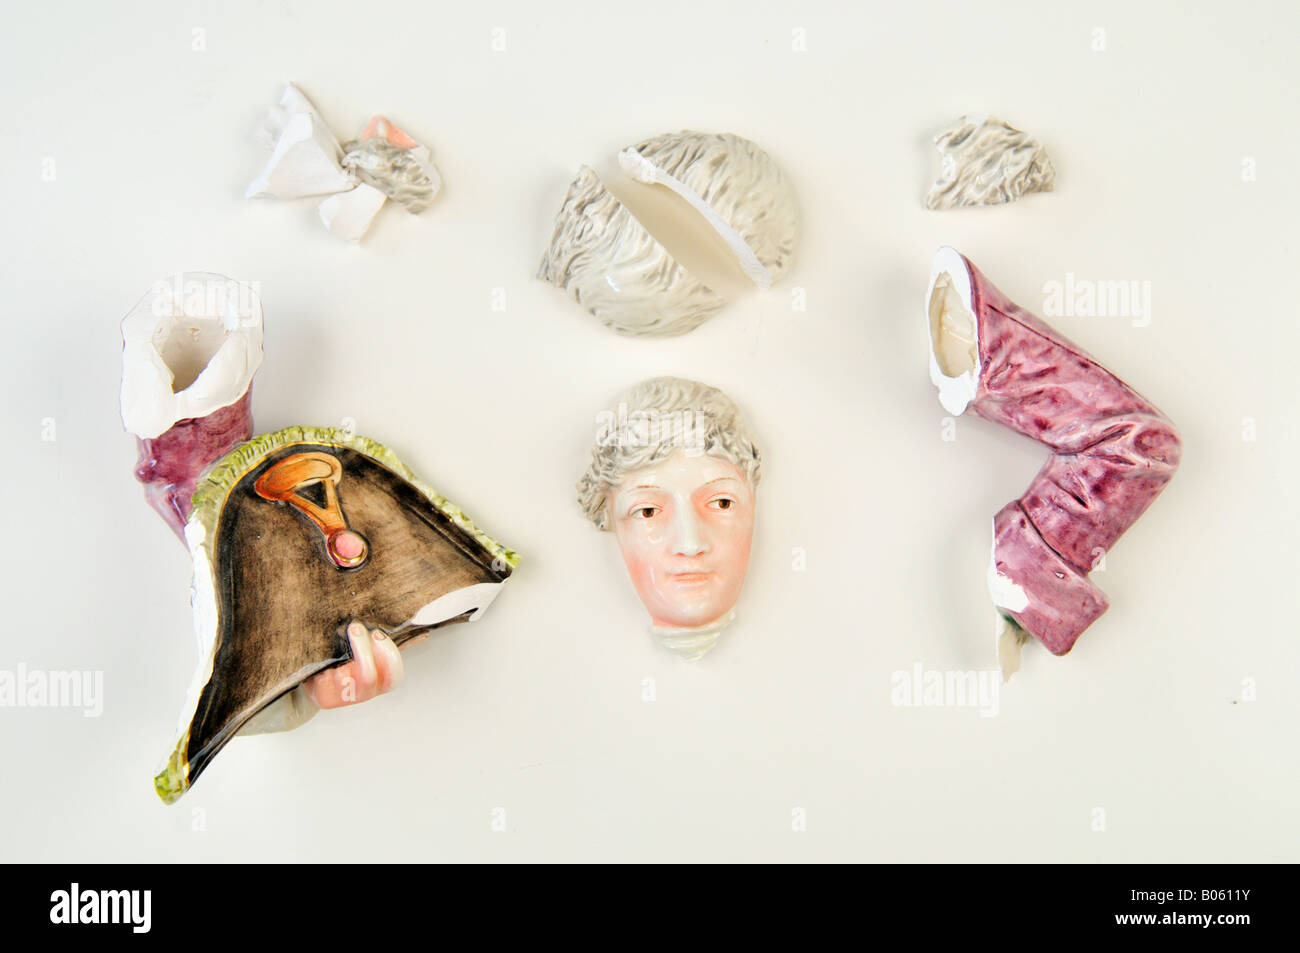 Parts of porcelain doll - Stock Image